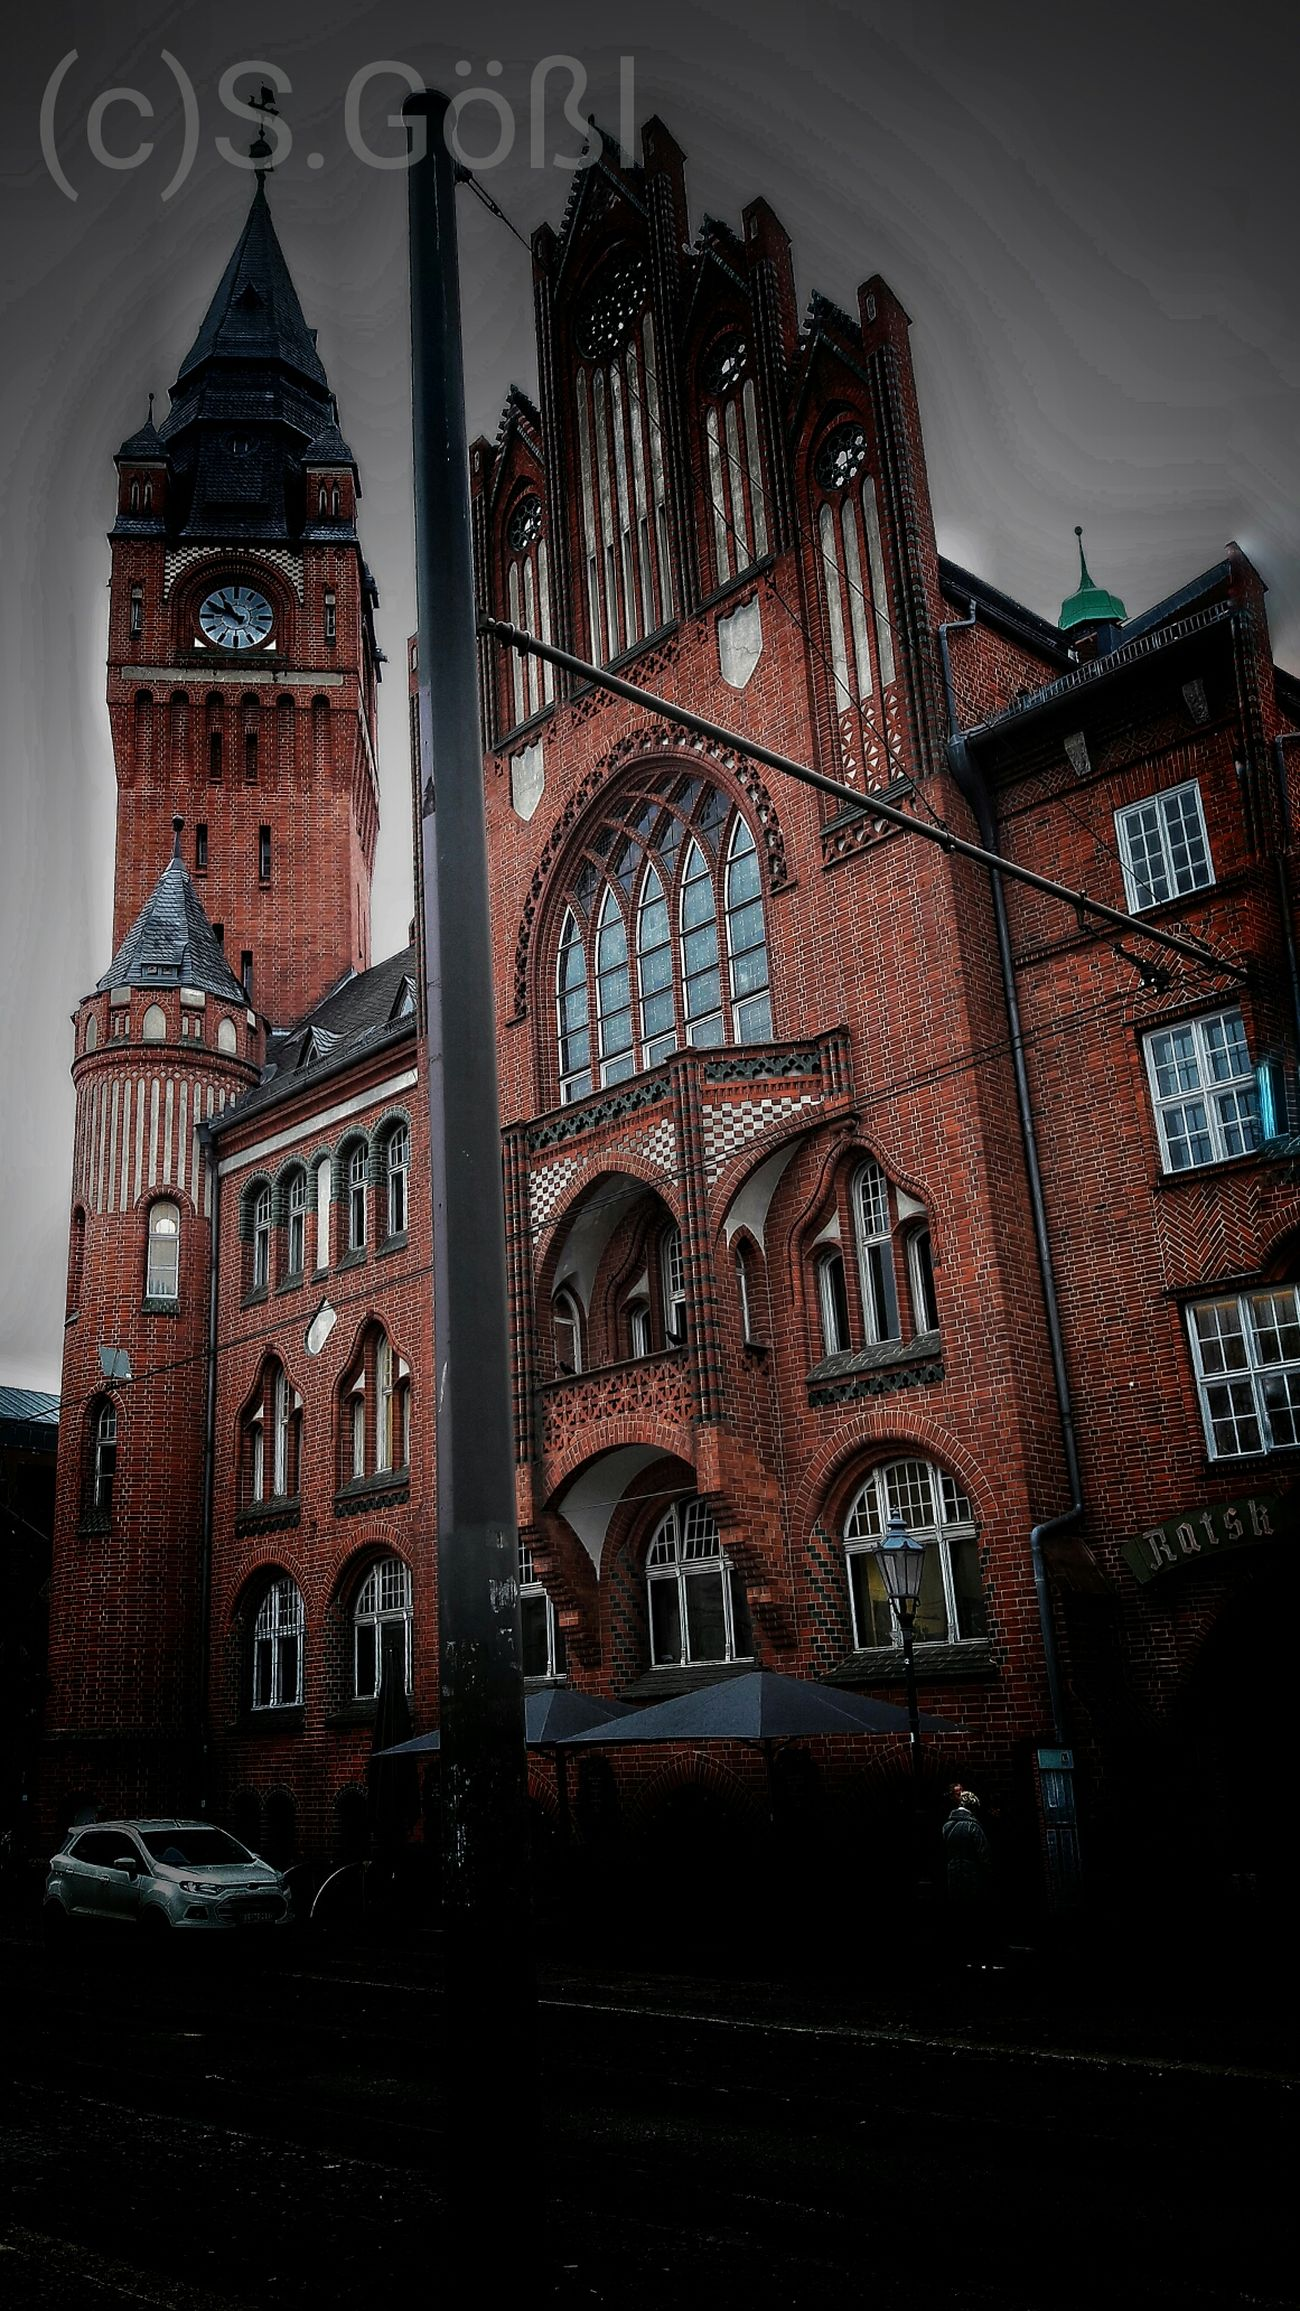 Rathaus Köpenick Rathaus Architecture Built Structure Travel Destinations History Building Exterior Clock Tower City Berlin Holiday My Fucking Berlin Berlin Photography Berlinstagram Berlintourist Berlinlove Berlincity Berlin, Germany  Berlin Life Hello World Photography Welcome To My World See The World Through My Eyes Taking Photos